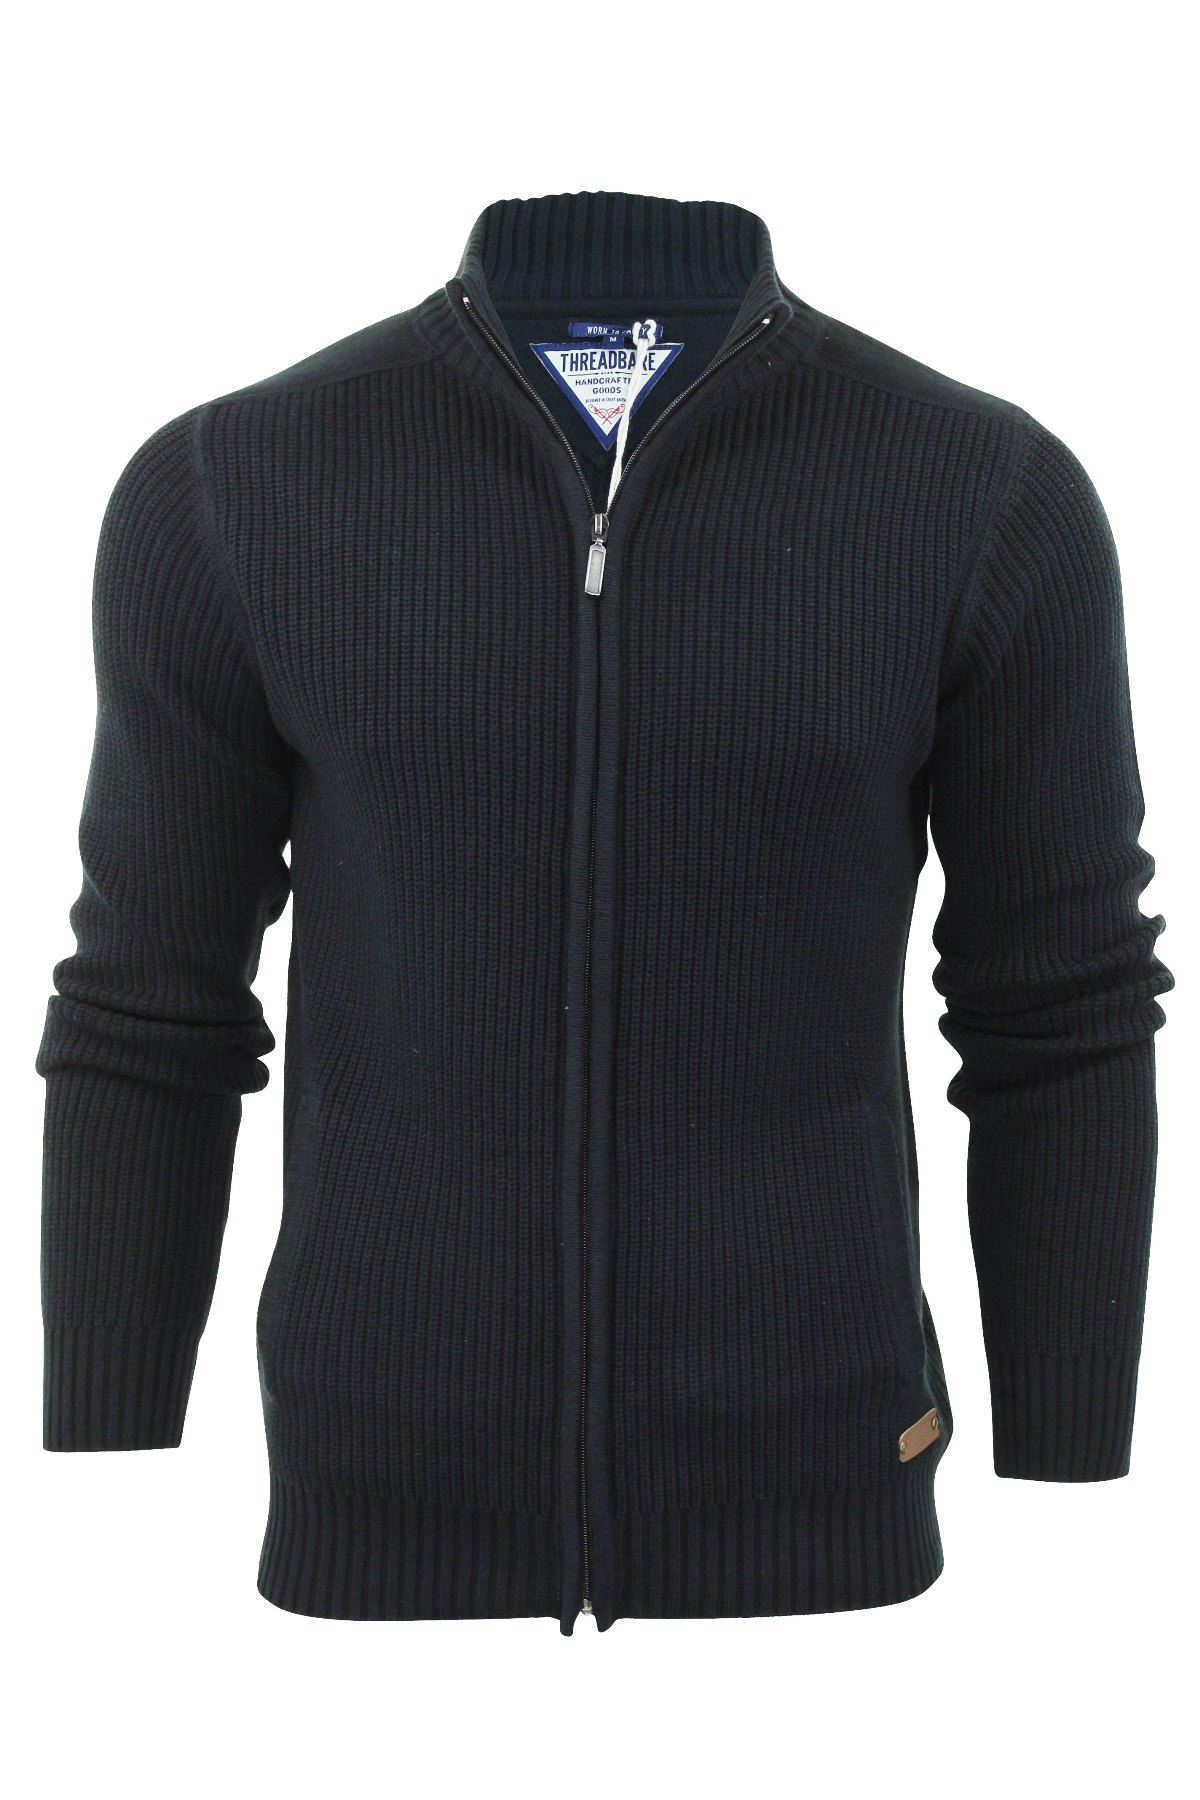 Tight Snug Fit / Zip Up Sweater. These sweaters are great for formal or casual events. The zipper design allows for a stylish outfit including a dress shirt and/or tie.